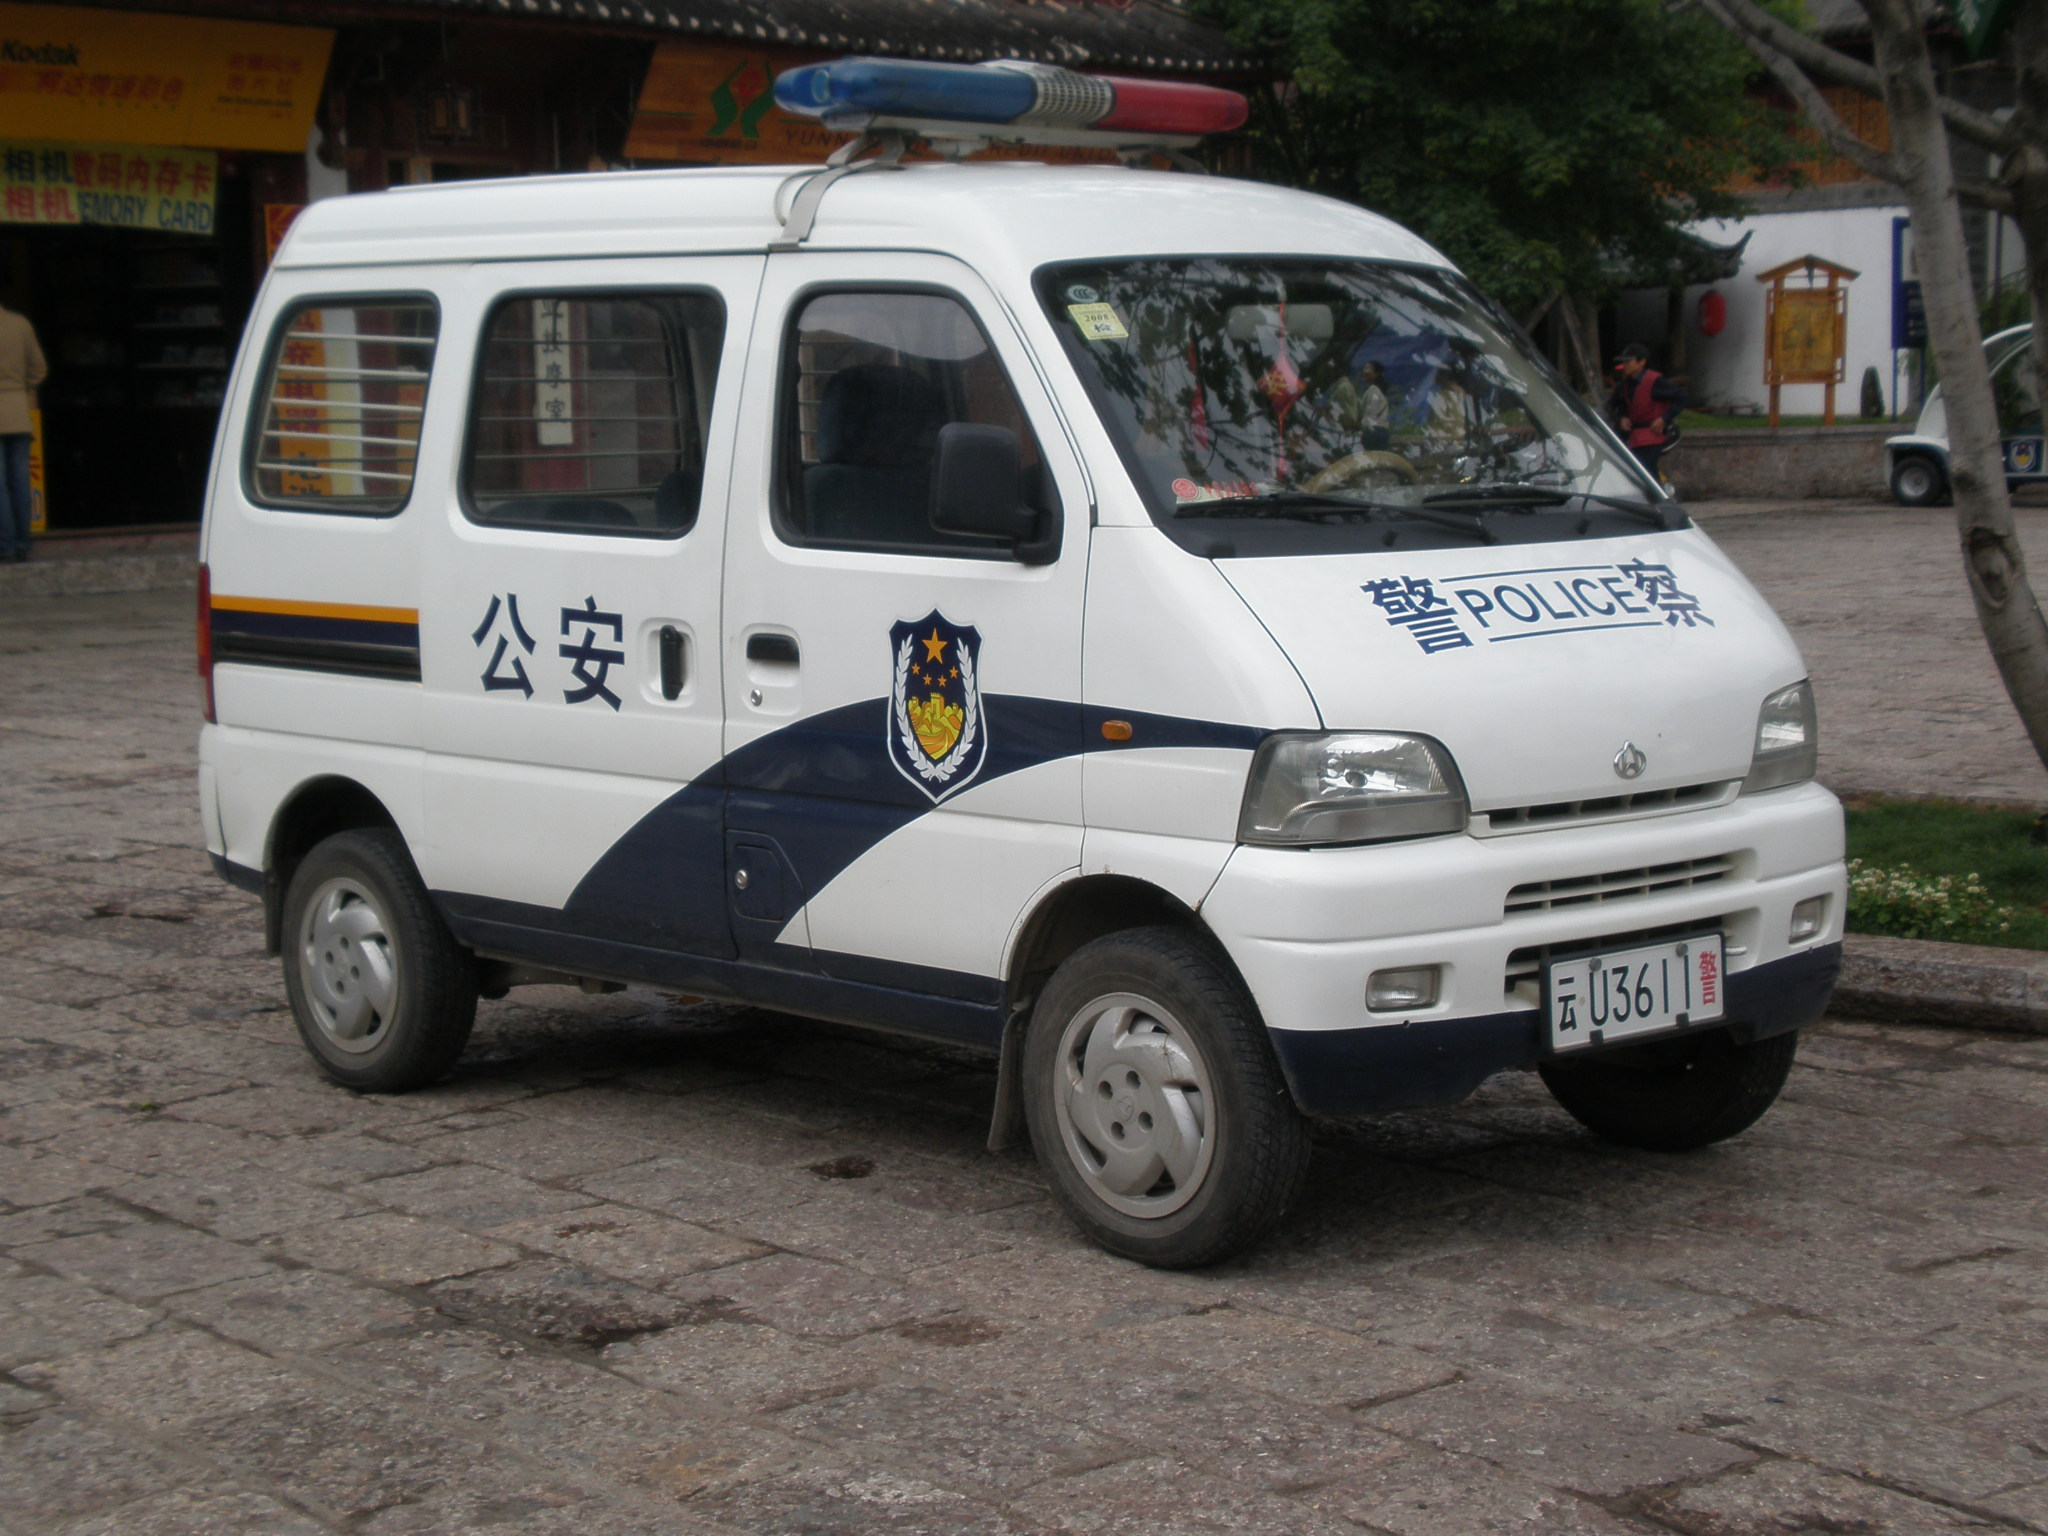 Description police minivan in yuhe square jpg